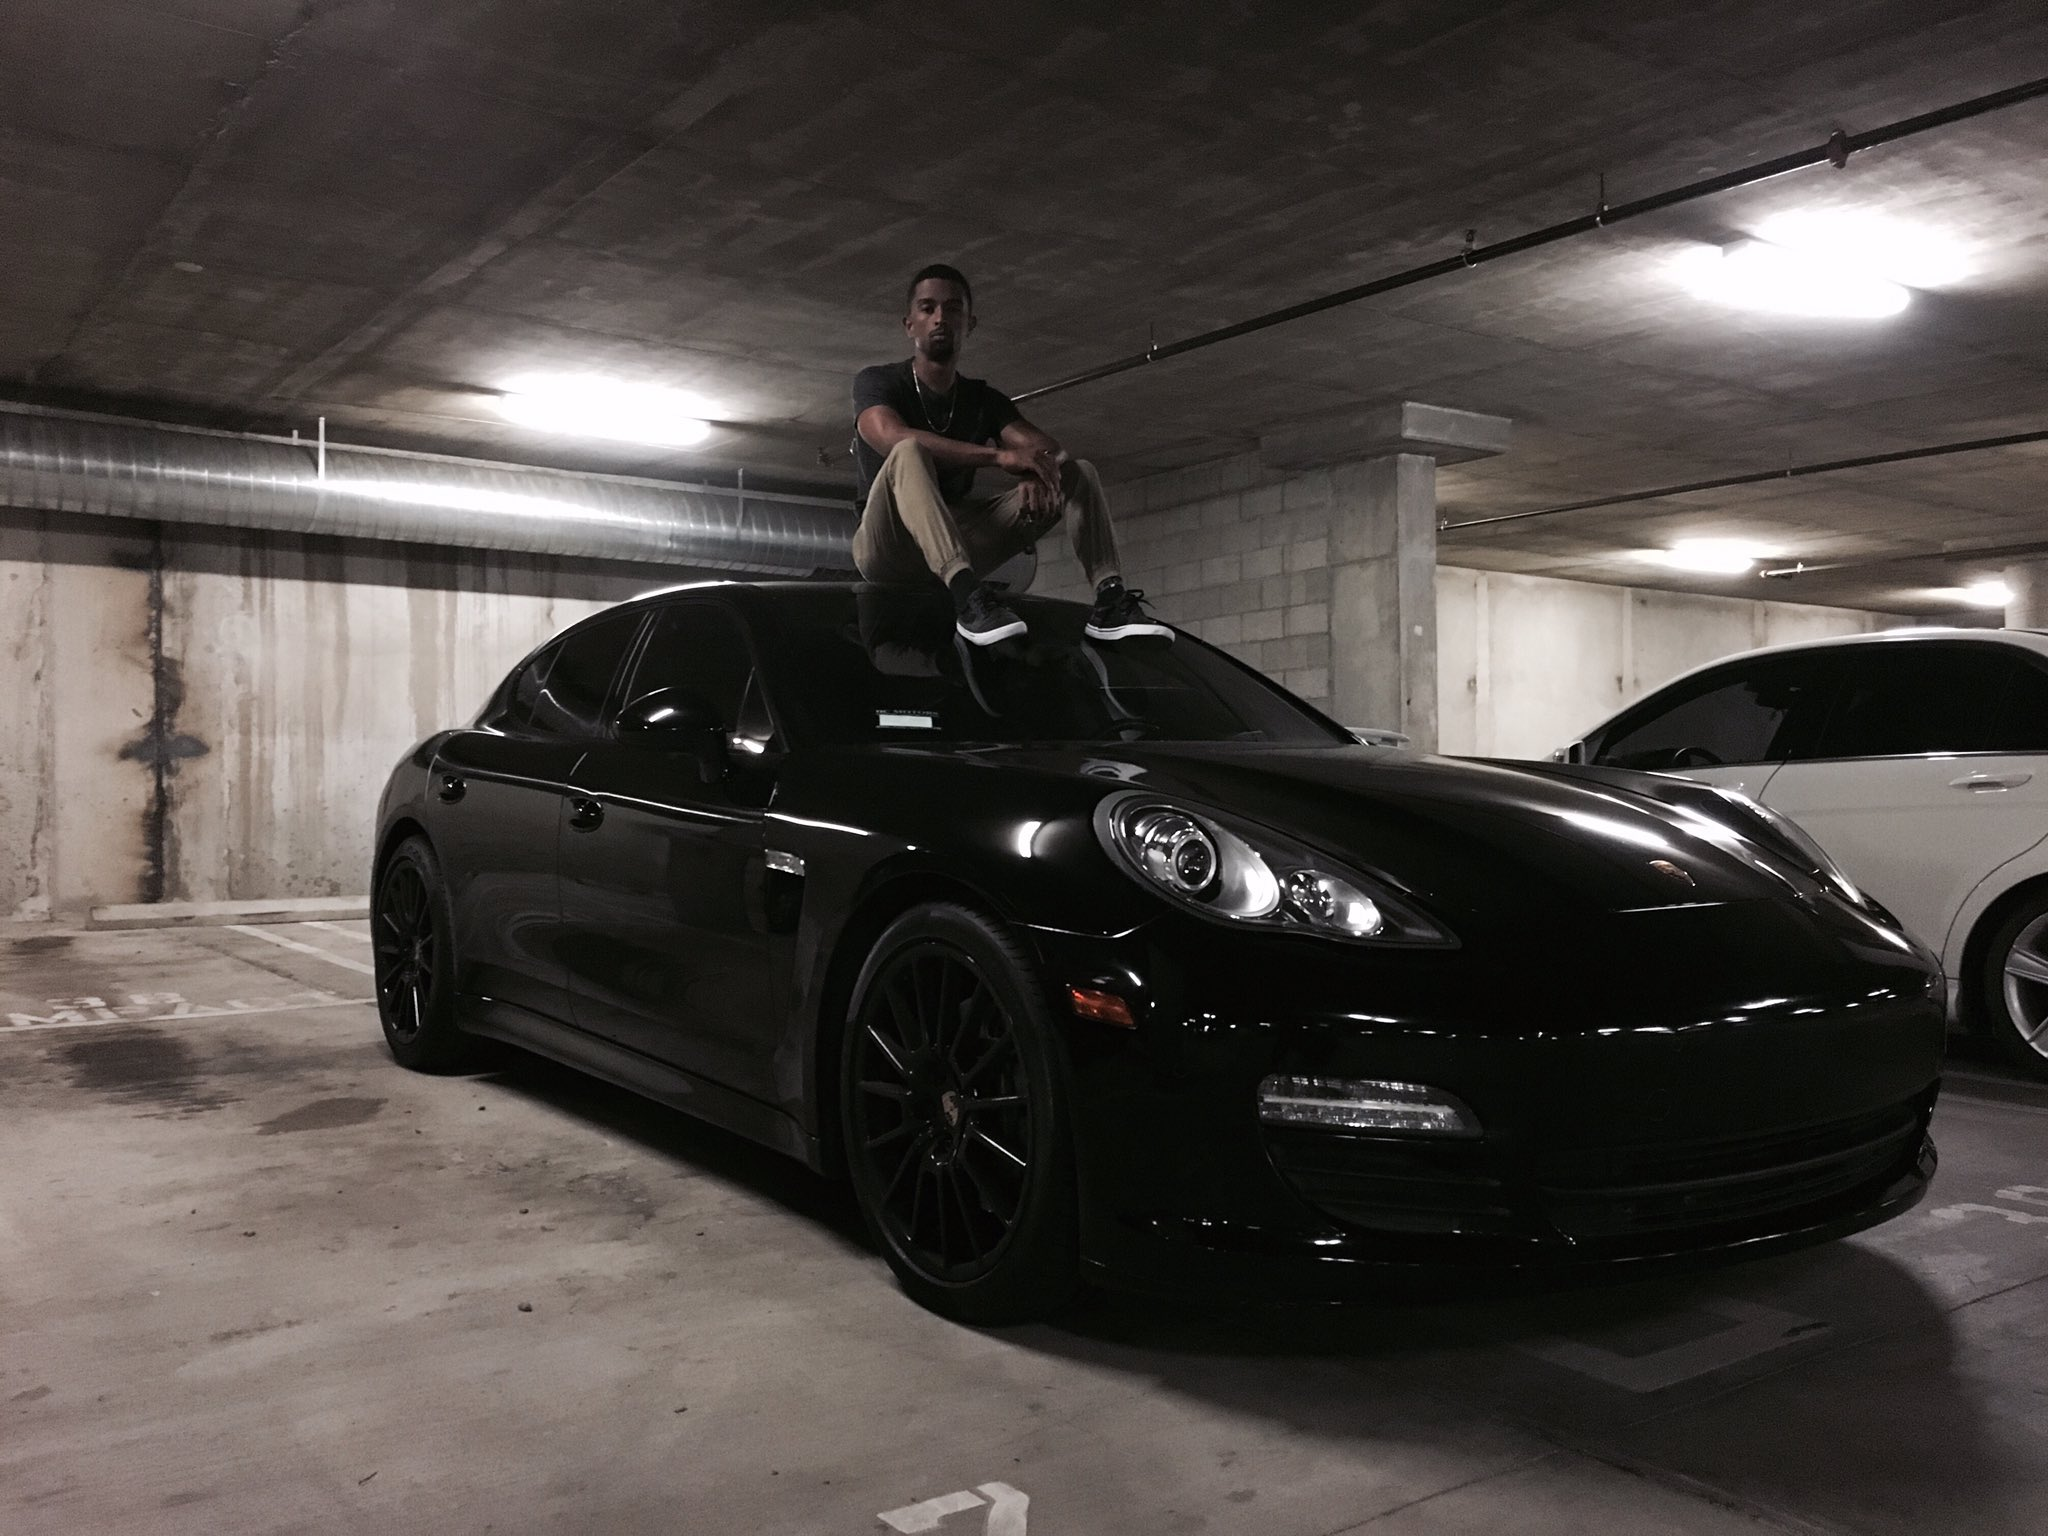 Kevin L. Walker on his Porsche Panamera